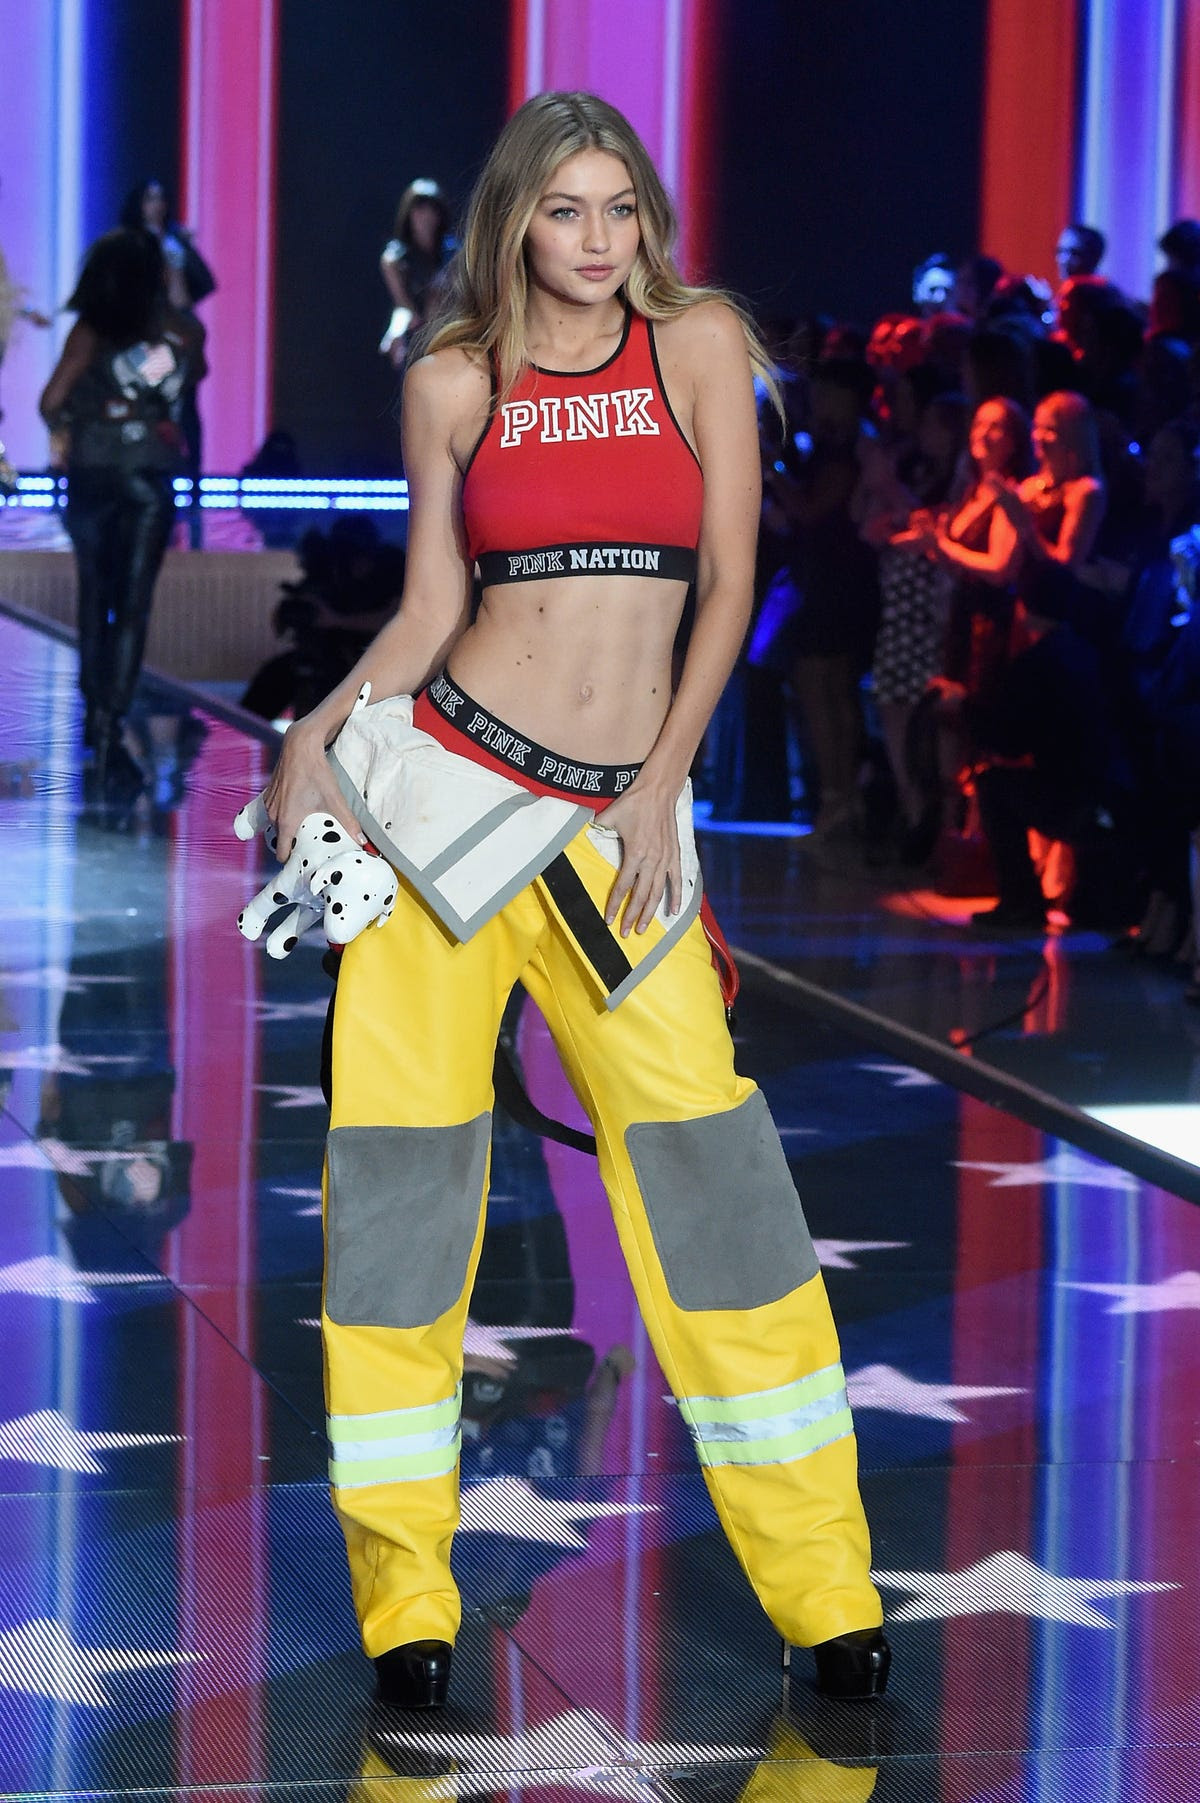 Gigi Hadid showed off her firewoman tendencies in the PINK section of the show.